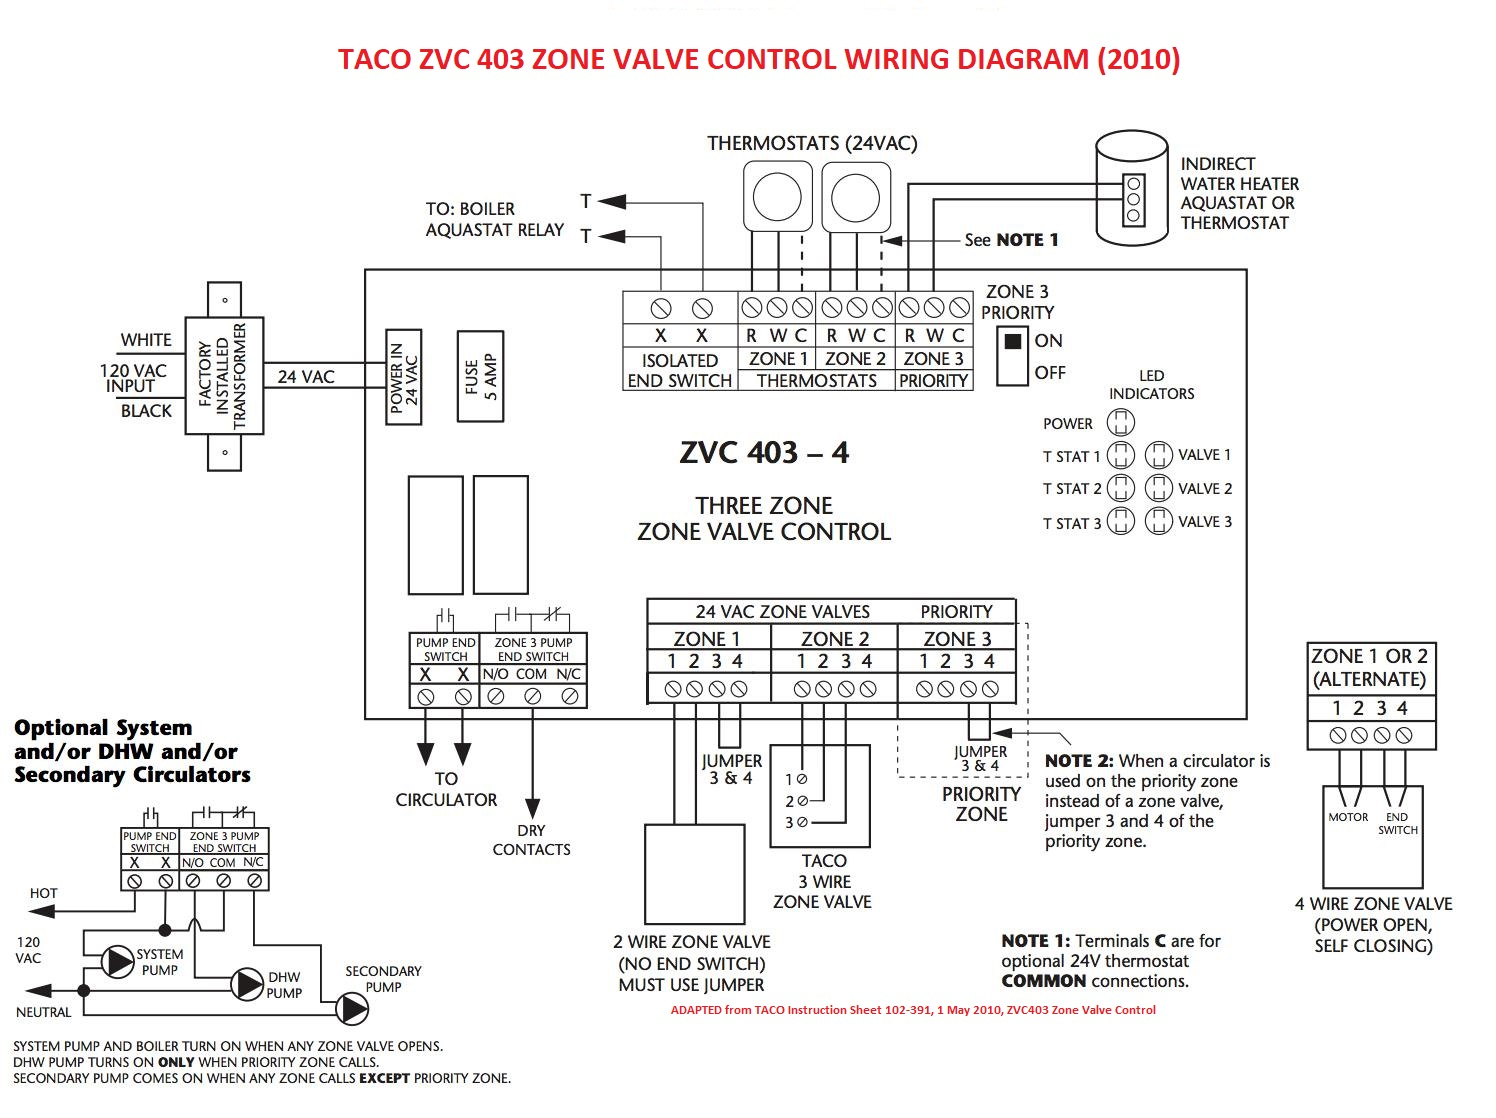 Thermostat Wiring Taco Wire Color - Data Wiring Diagram Detailed - Thermostat Wiring Diagram, Nest, Taco, Sr503-4